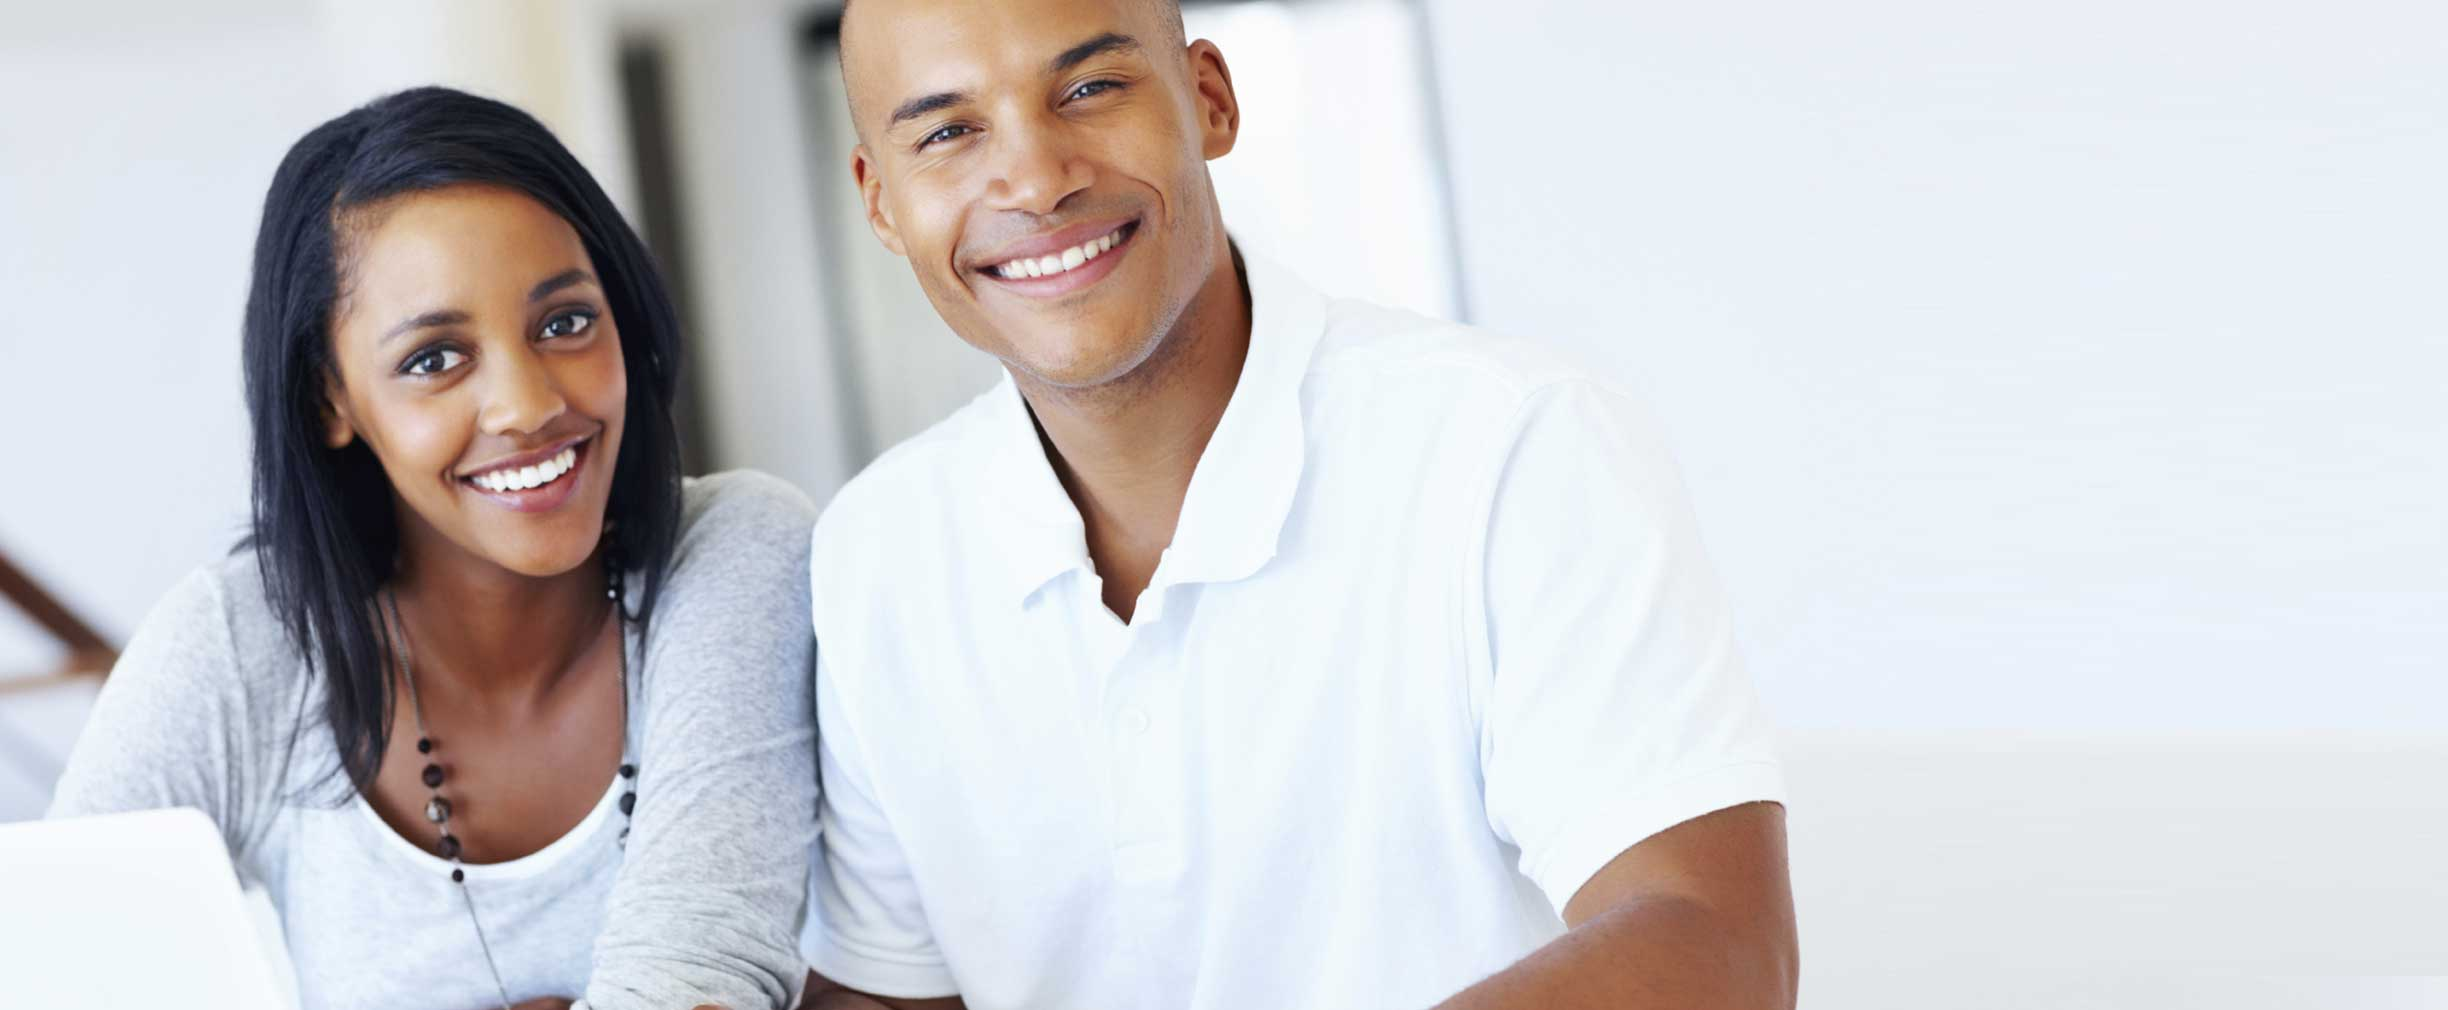 aligning risk tolerance with your spouse